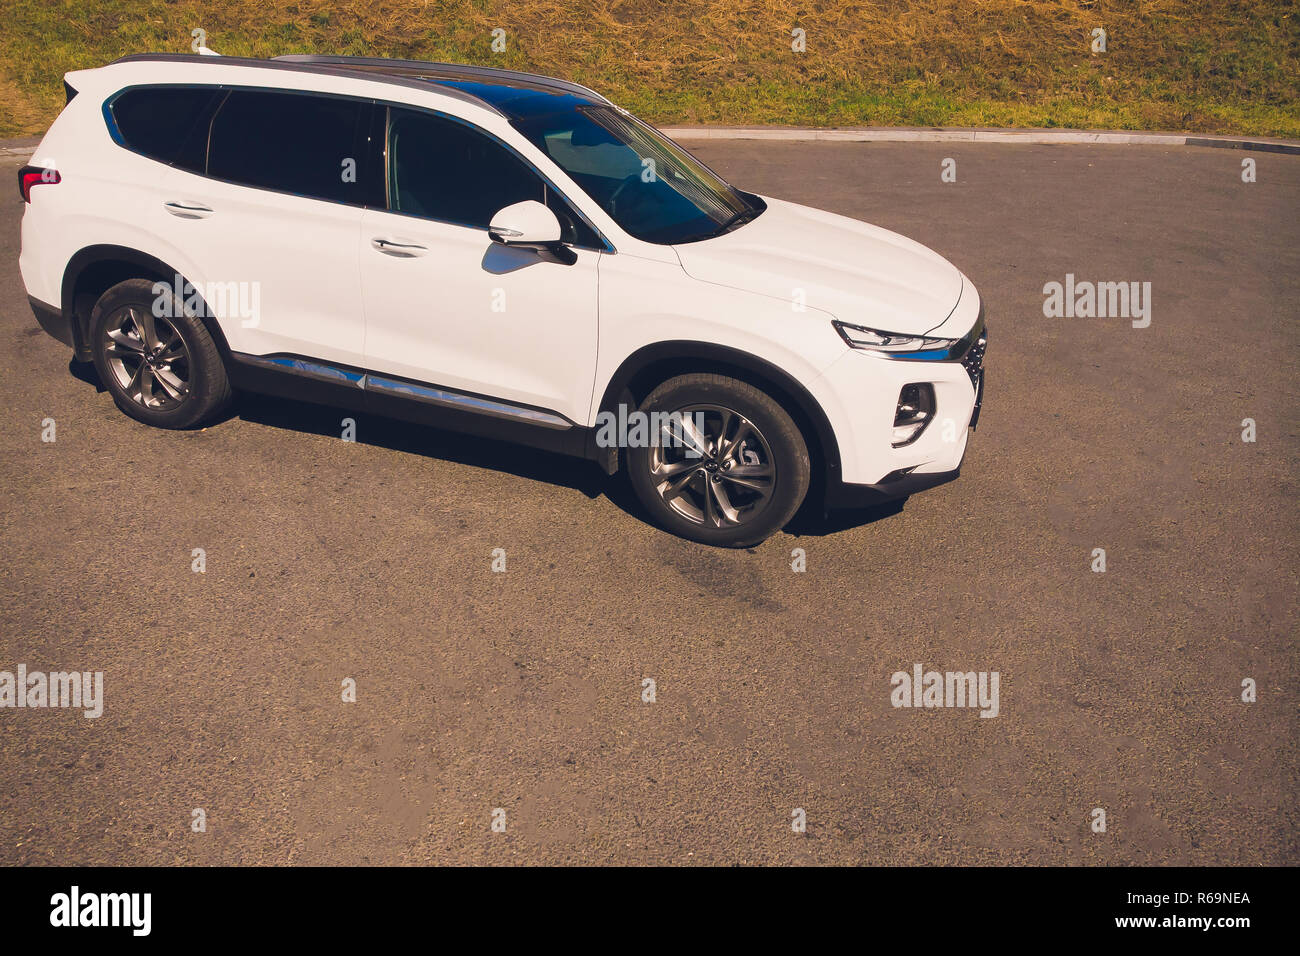 UFA, RUSSIA - 1 AUGUST 2018: Hyundai Santa Fe 2018 new suv car view from above - Stock Image